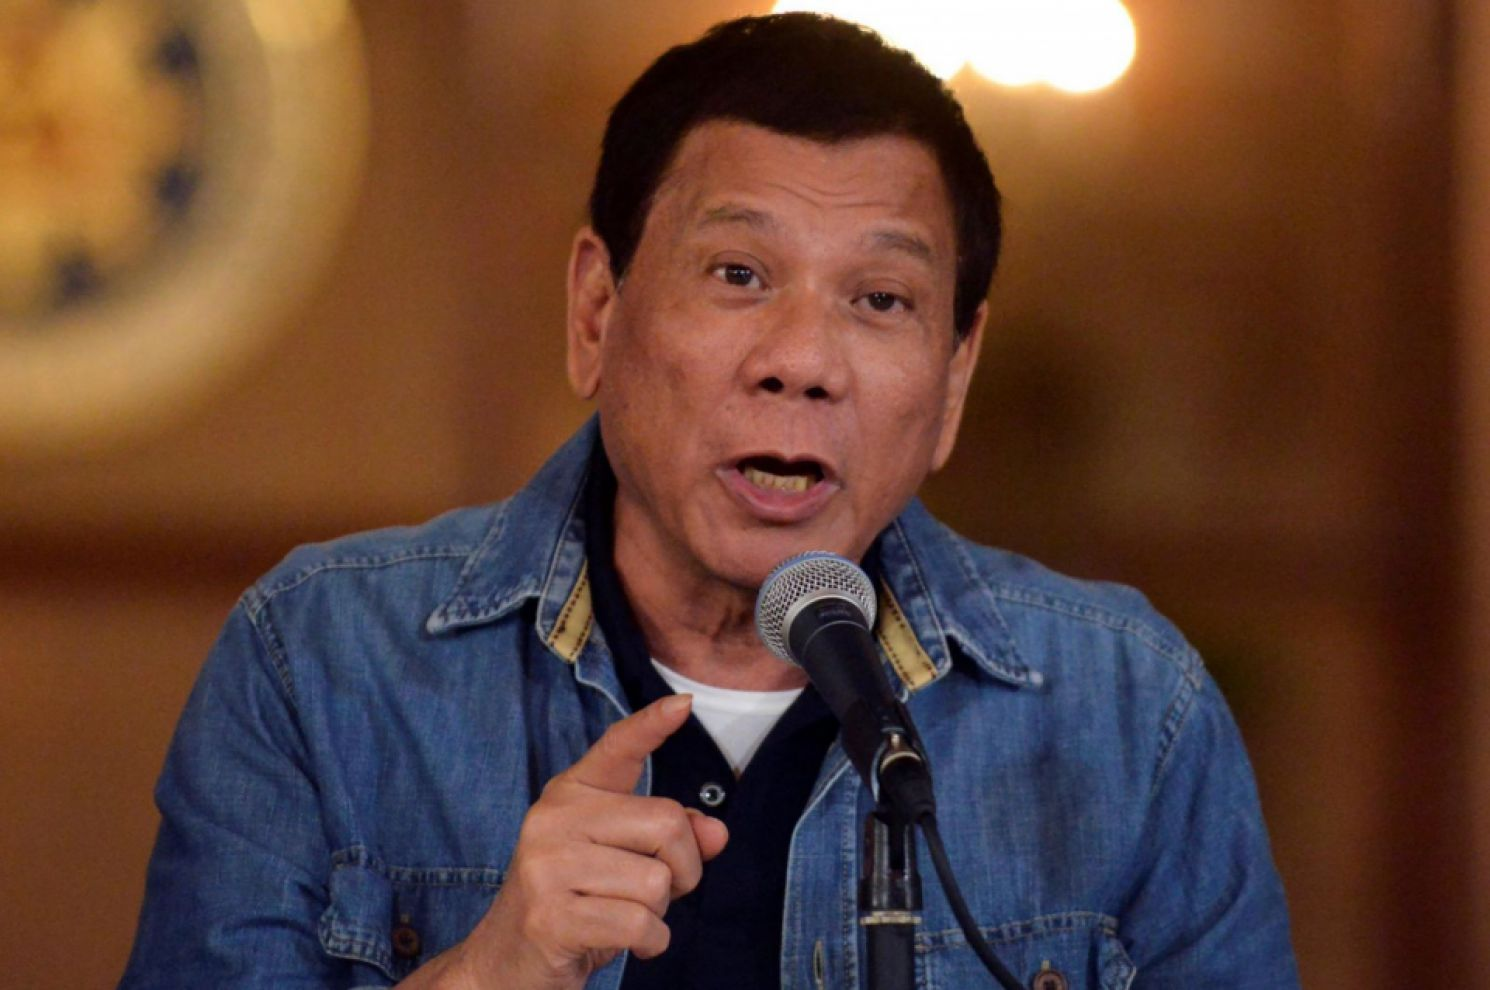 hilippine President Rodrigo Duterte has described European lawmakers as